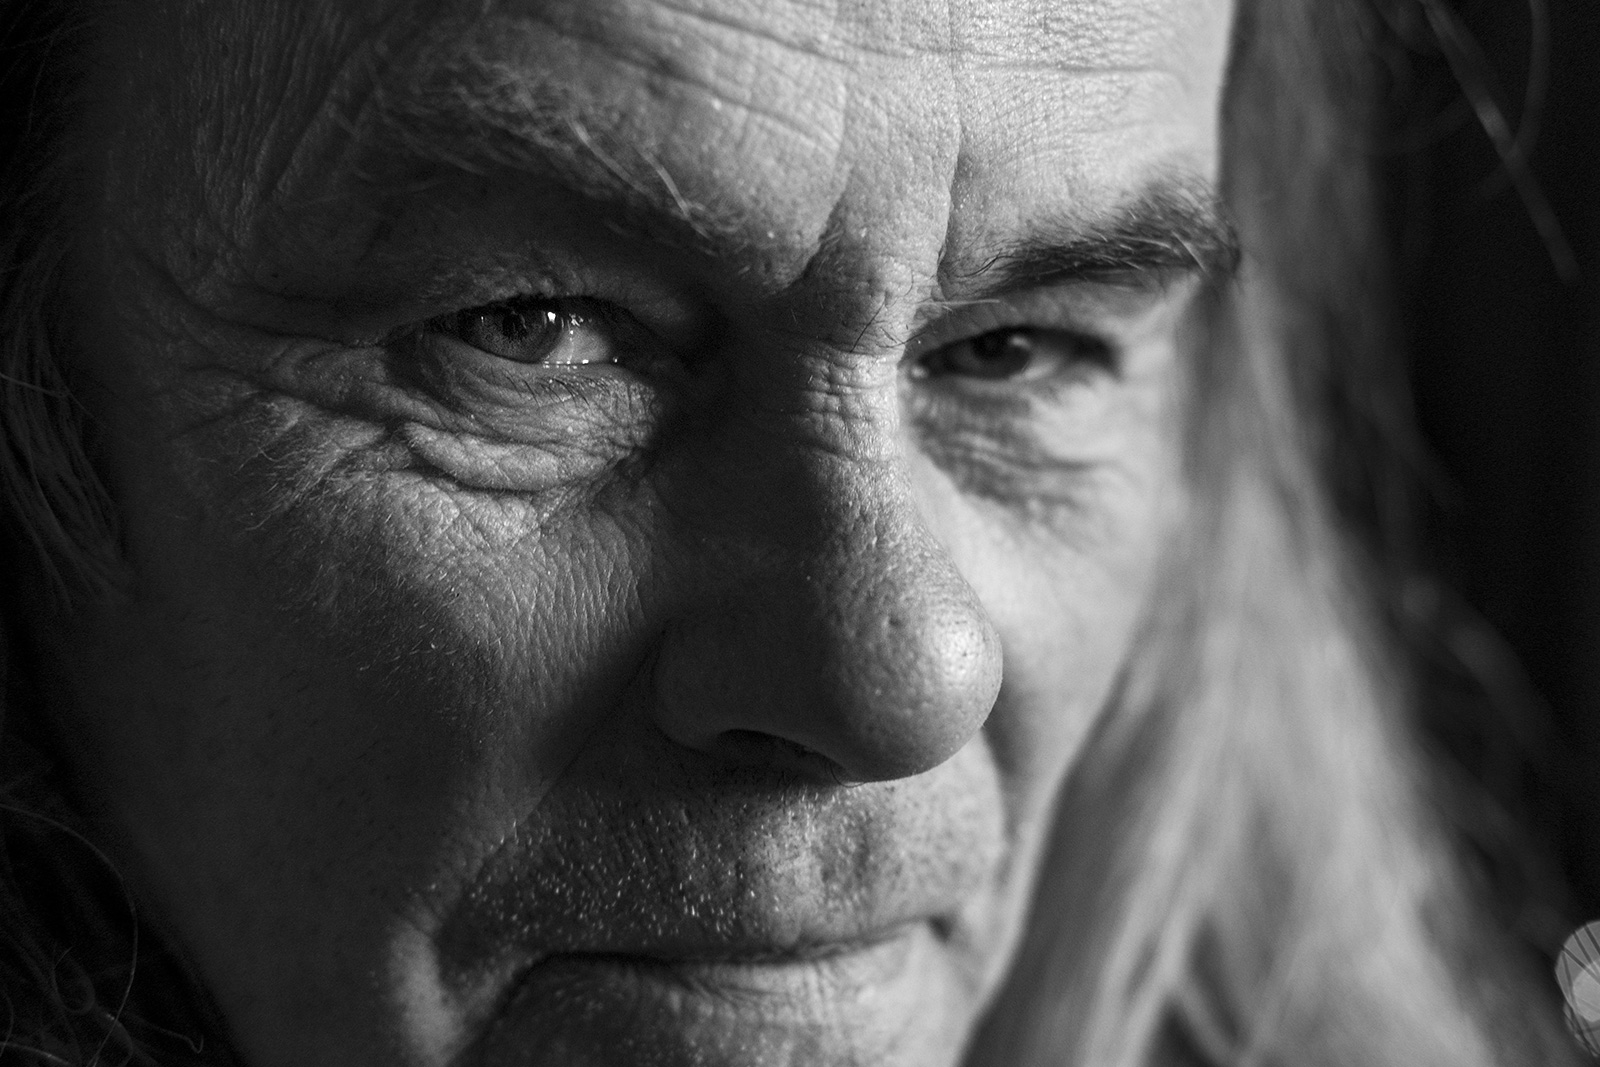 Mature man with shy grin and sparkle in his eye looking at viewer, Marcham Oxfordshire UK black and white landscape portrait with natural light and strong shadows ©P. Maton 2019 eyeteeth.net